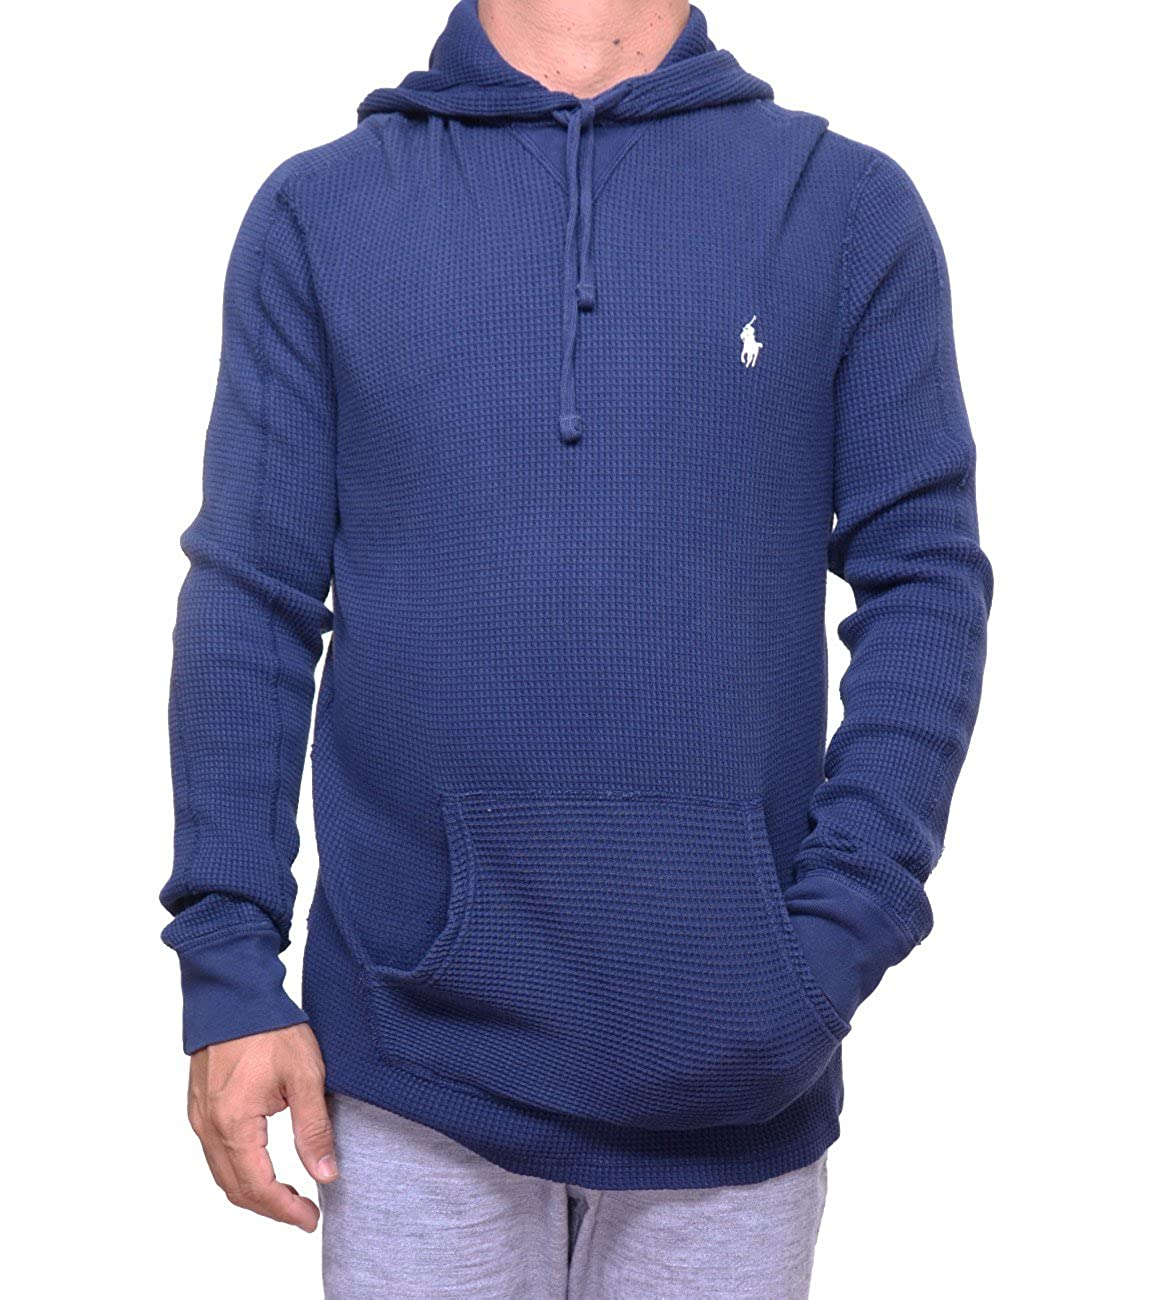 f3a0551b Polo Ralph Lauren Men's Waffle-Knit Cotton Hoodie at Amazon ...